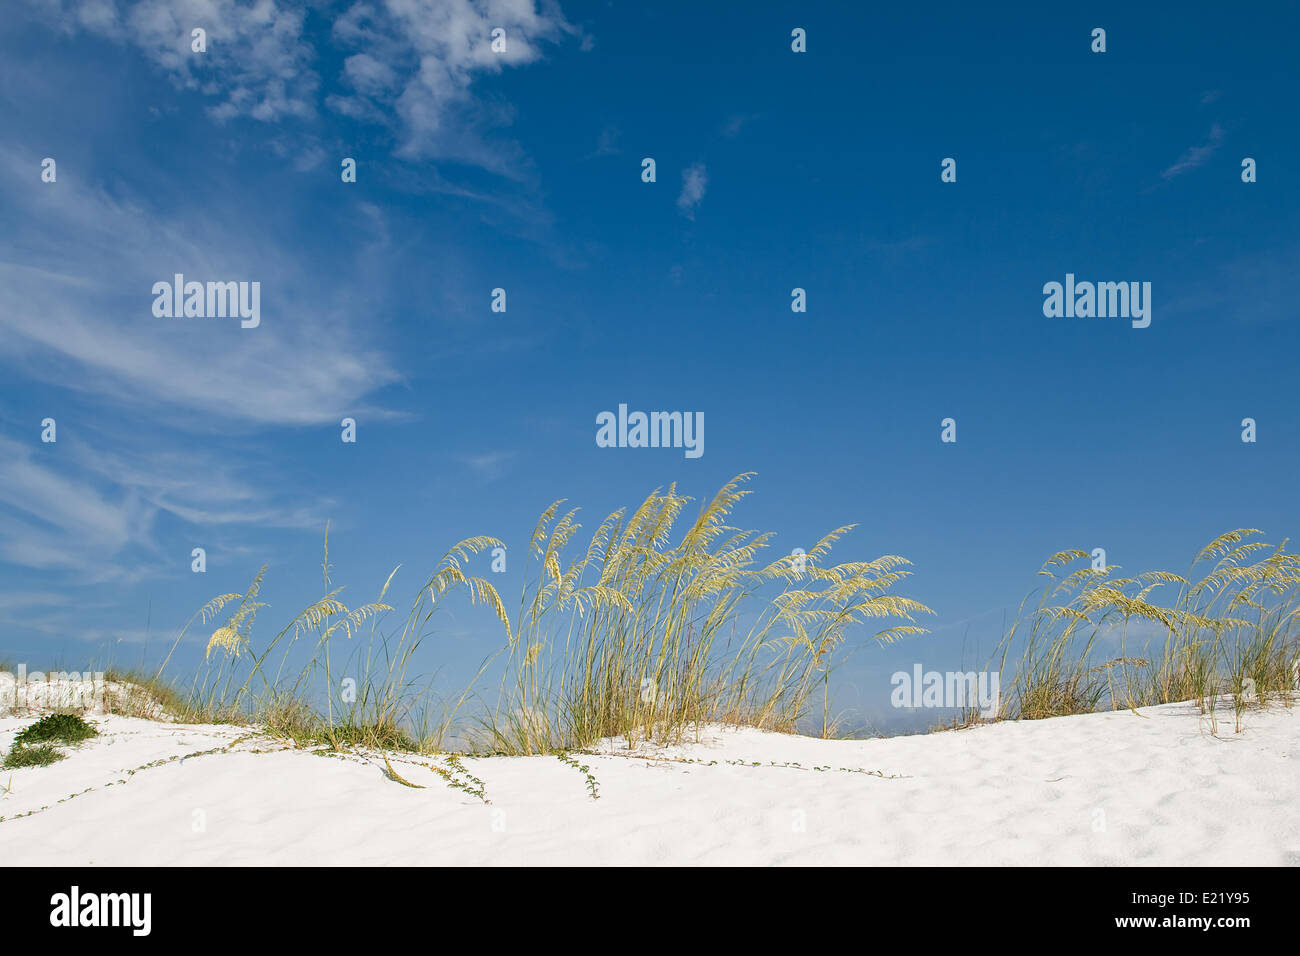 Beach sand dune with grasses and cane - Stock Image